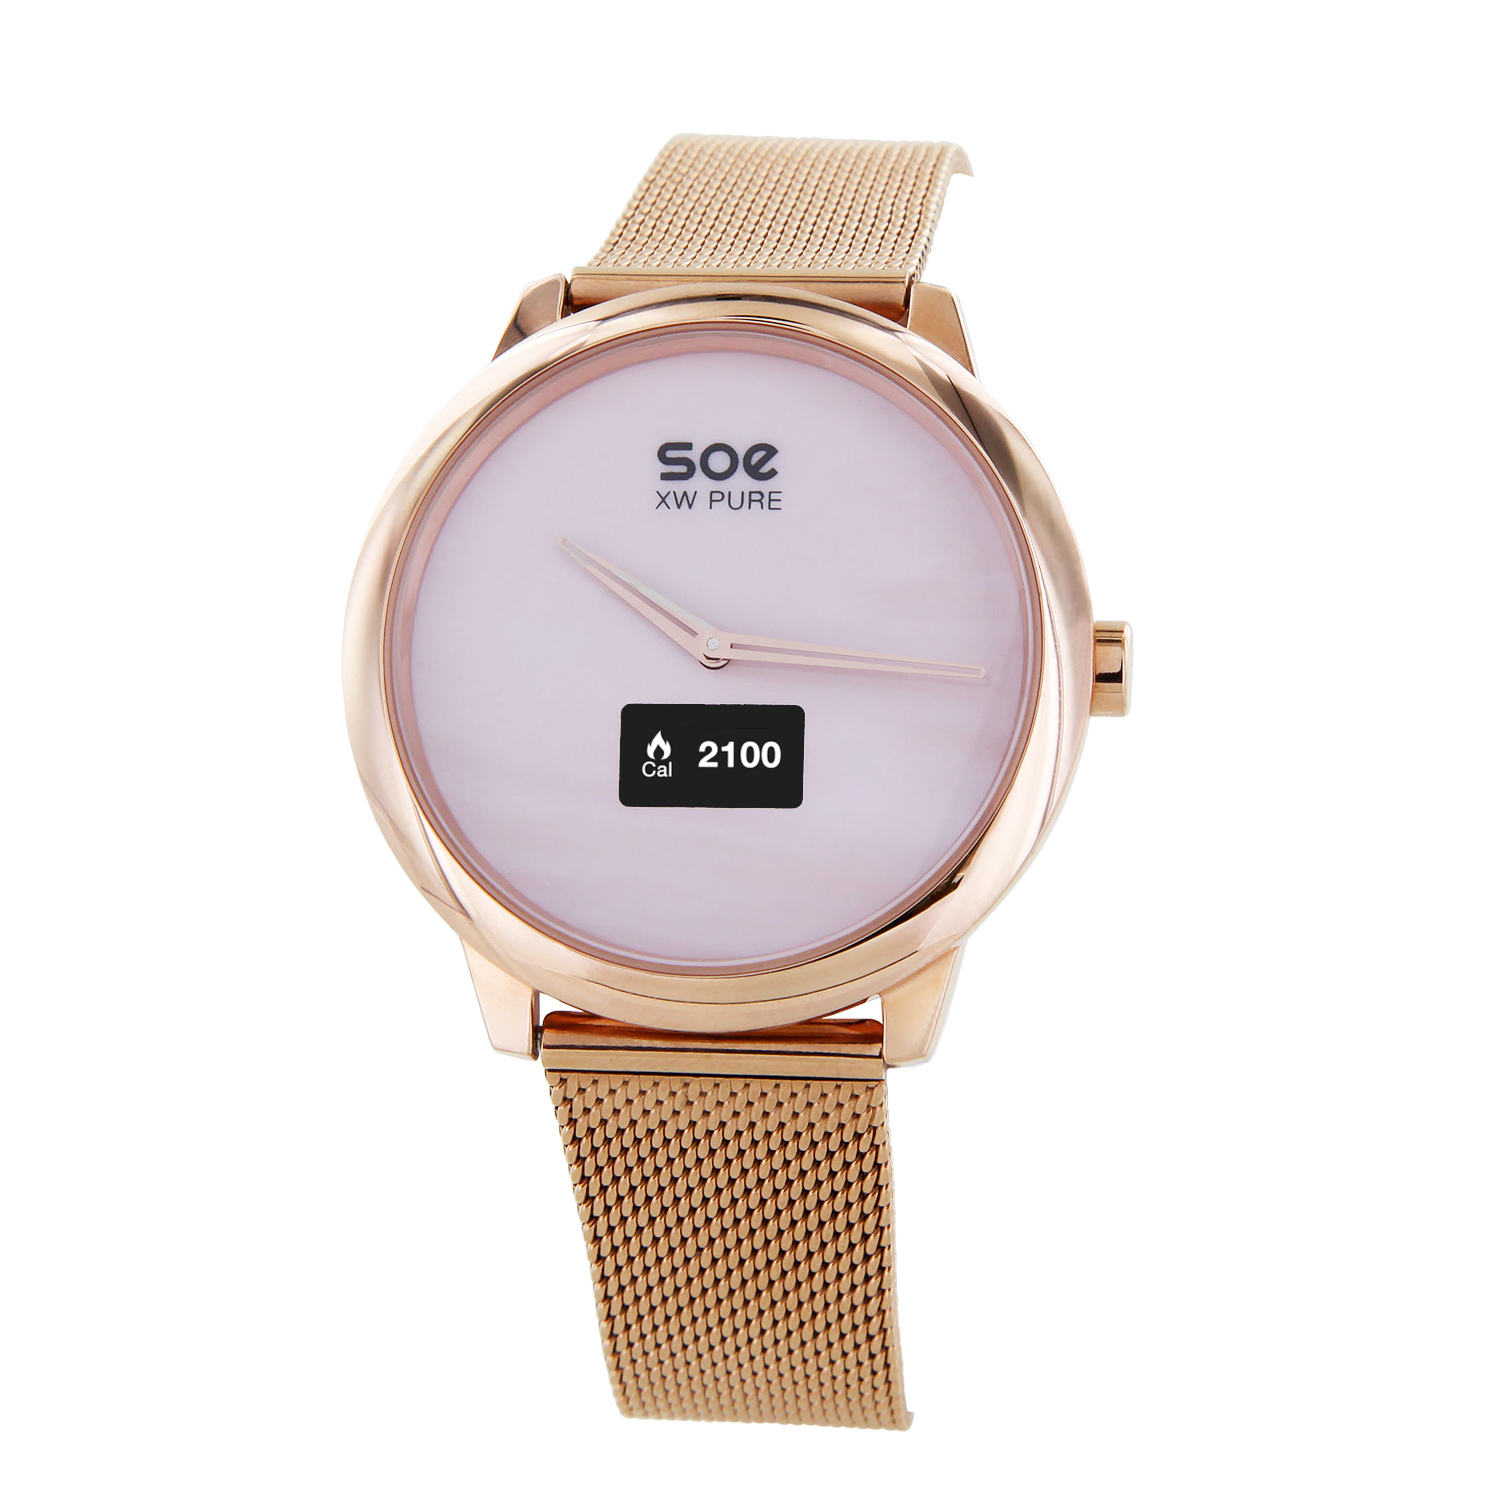 Smartwatch Damen X Watch Soe Xw Pure Damen Quarz Smartwatch